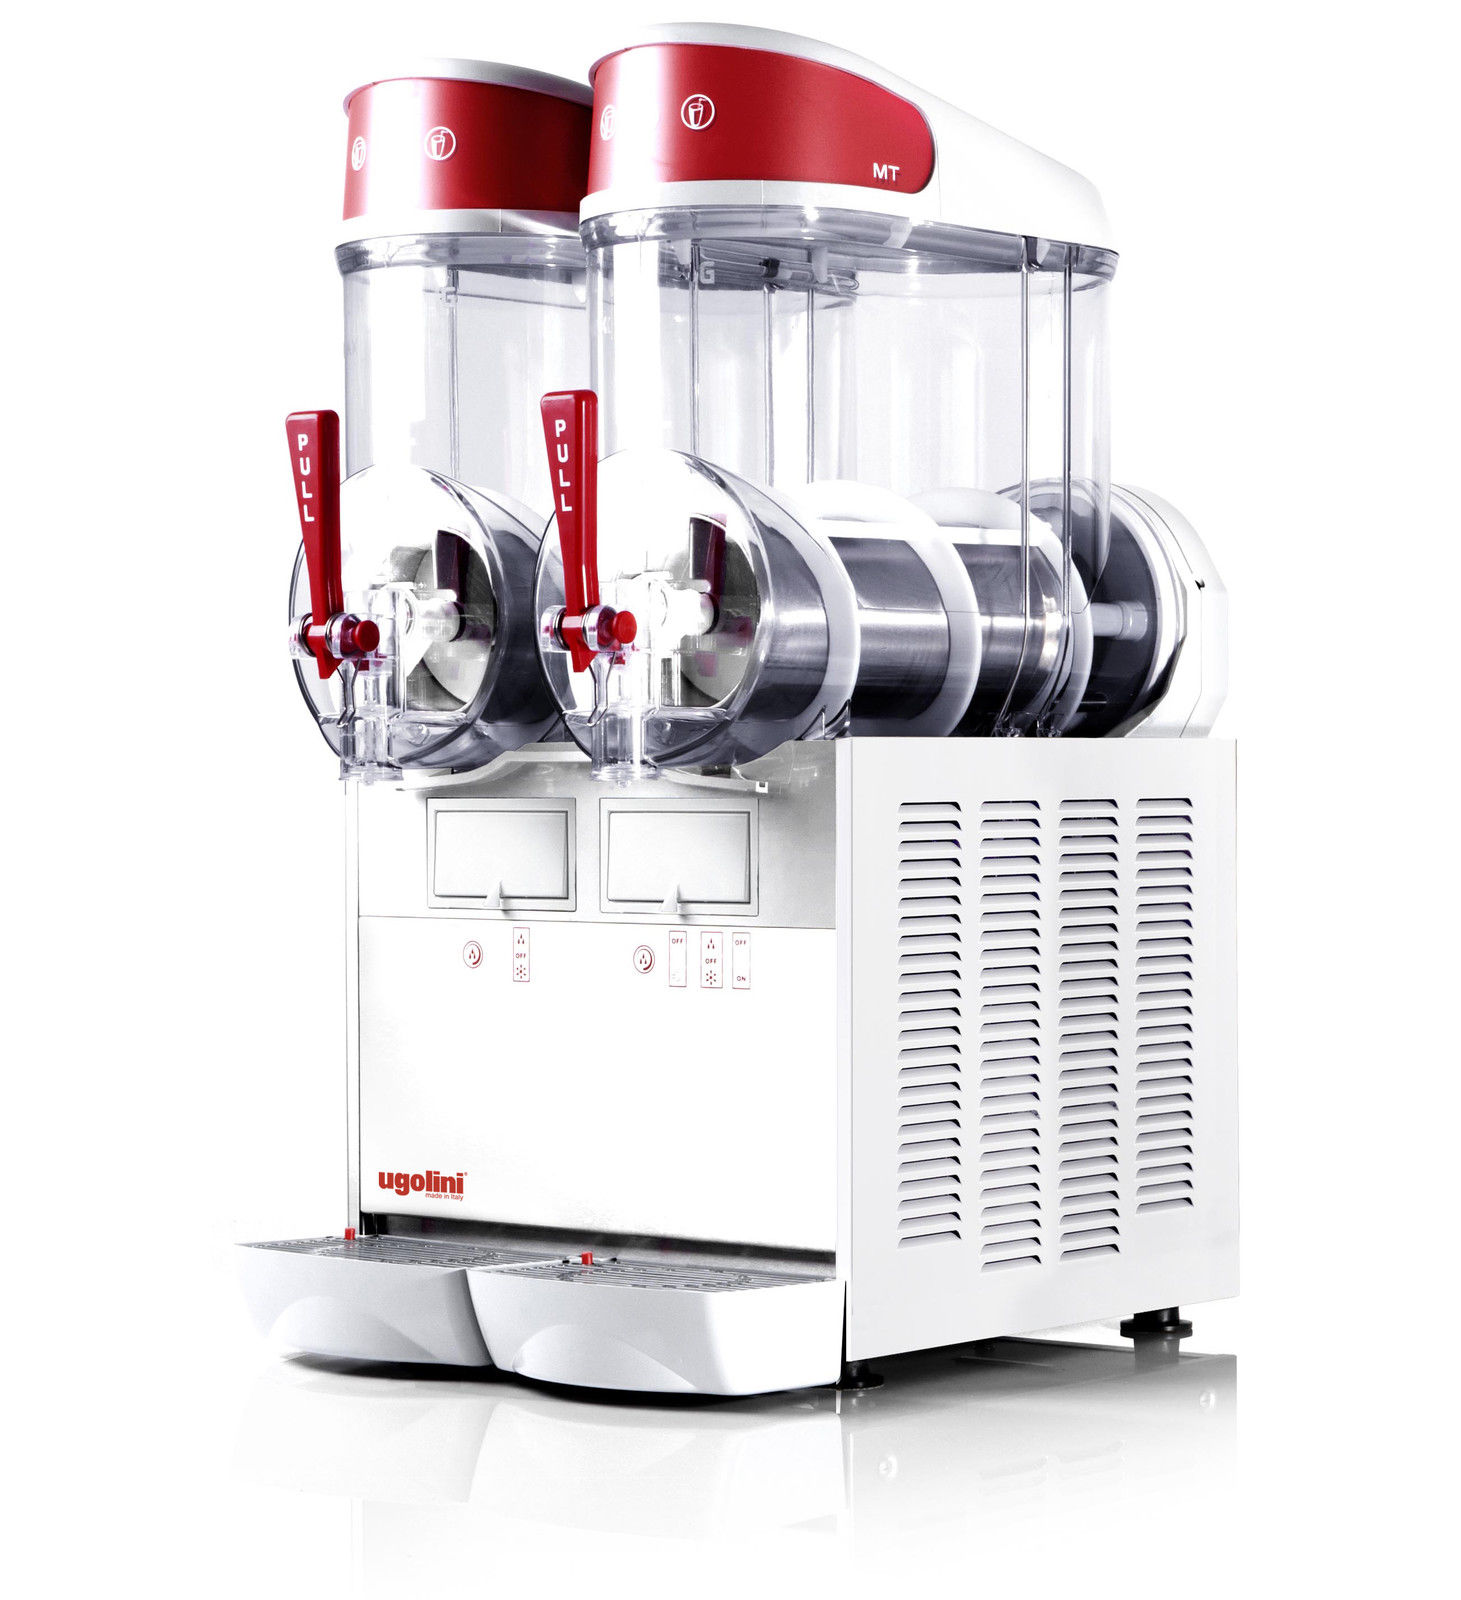 Ugolini MT 2 Slushie Machine